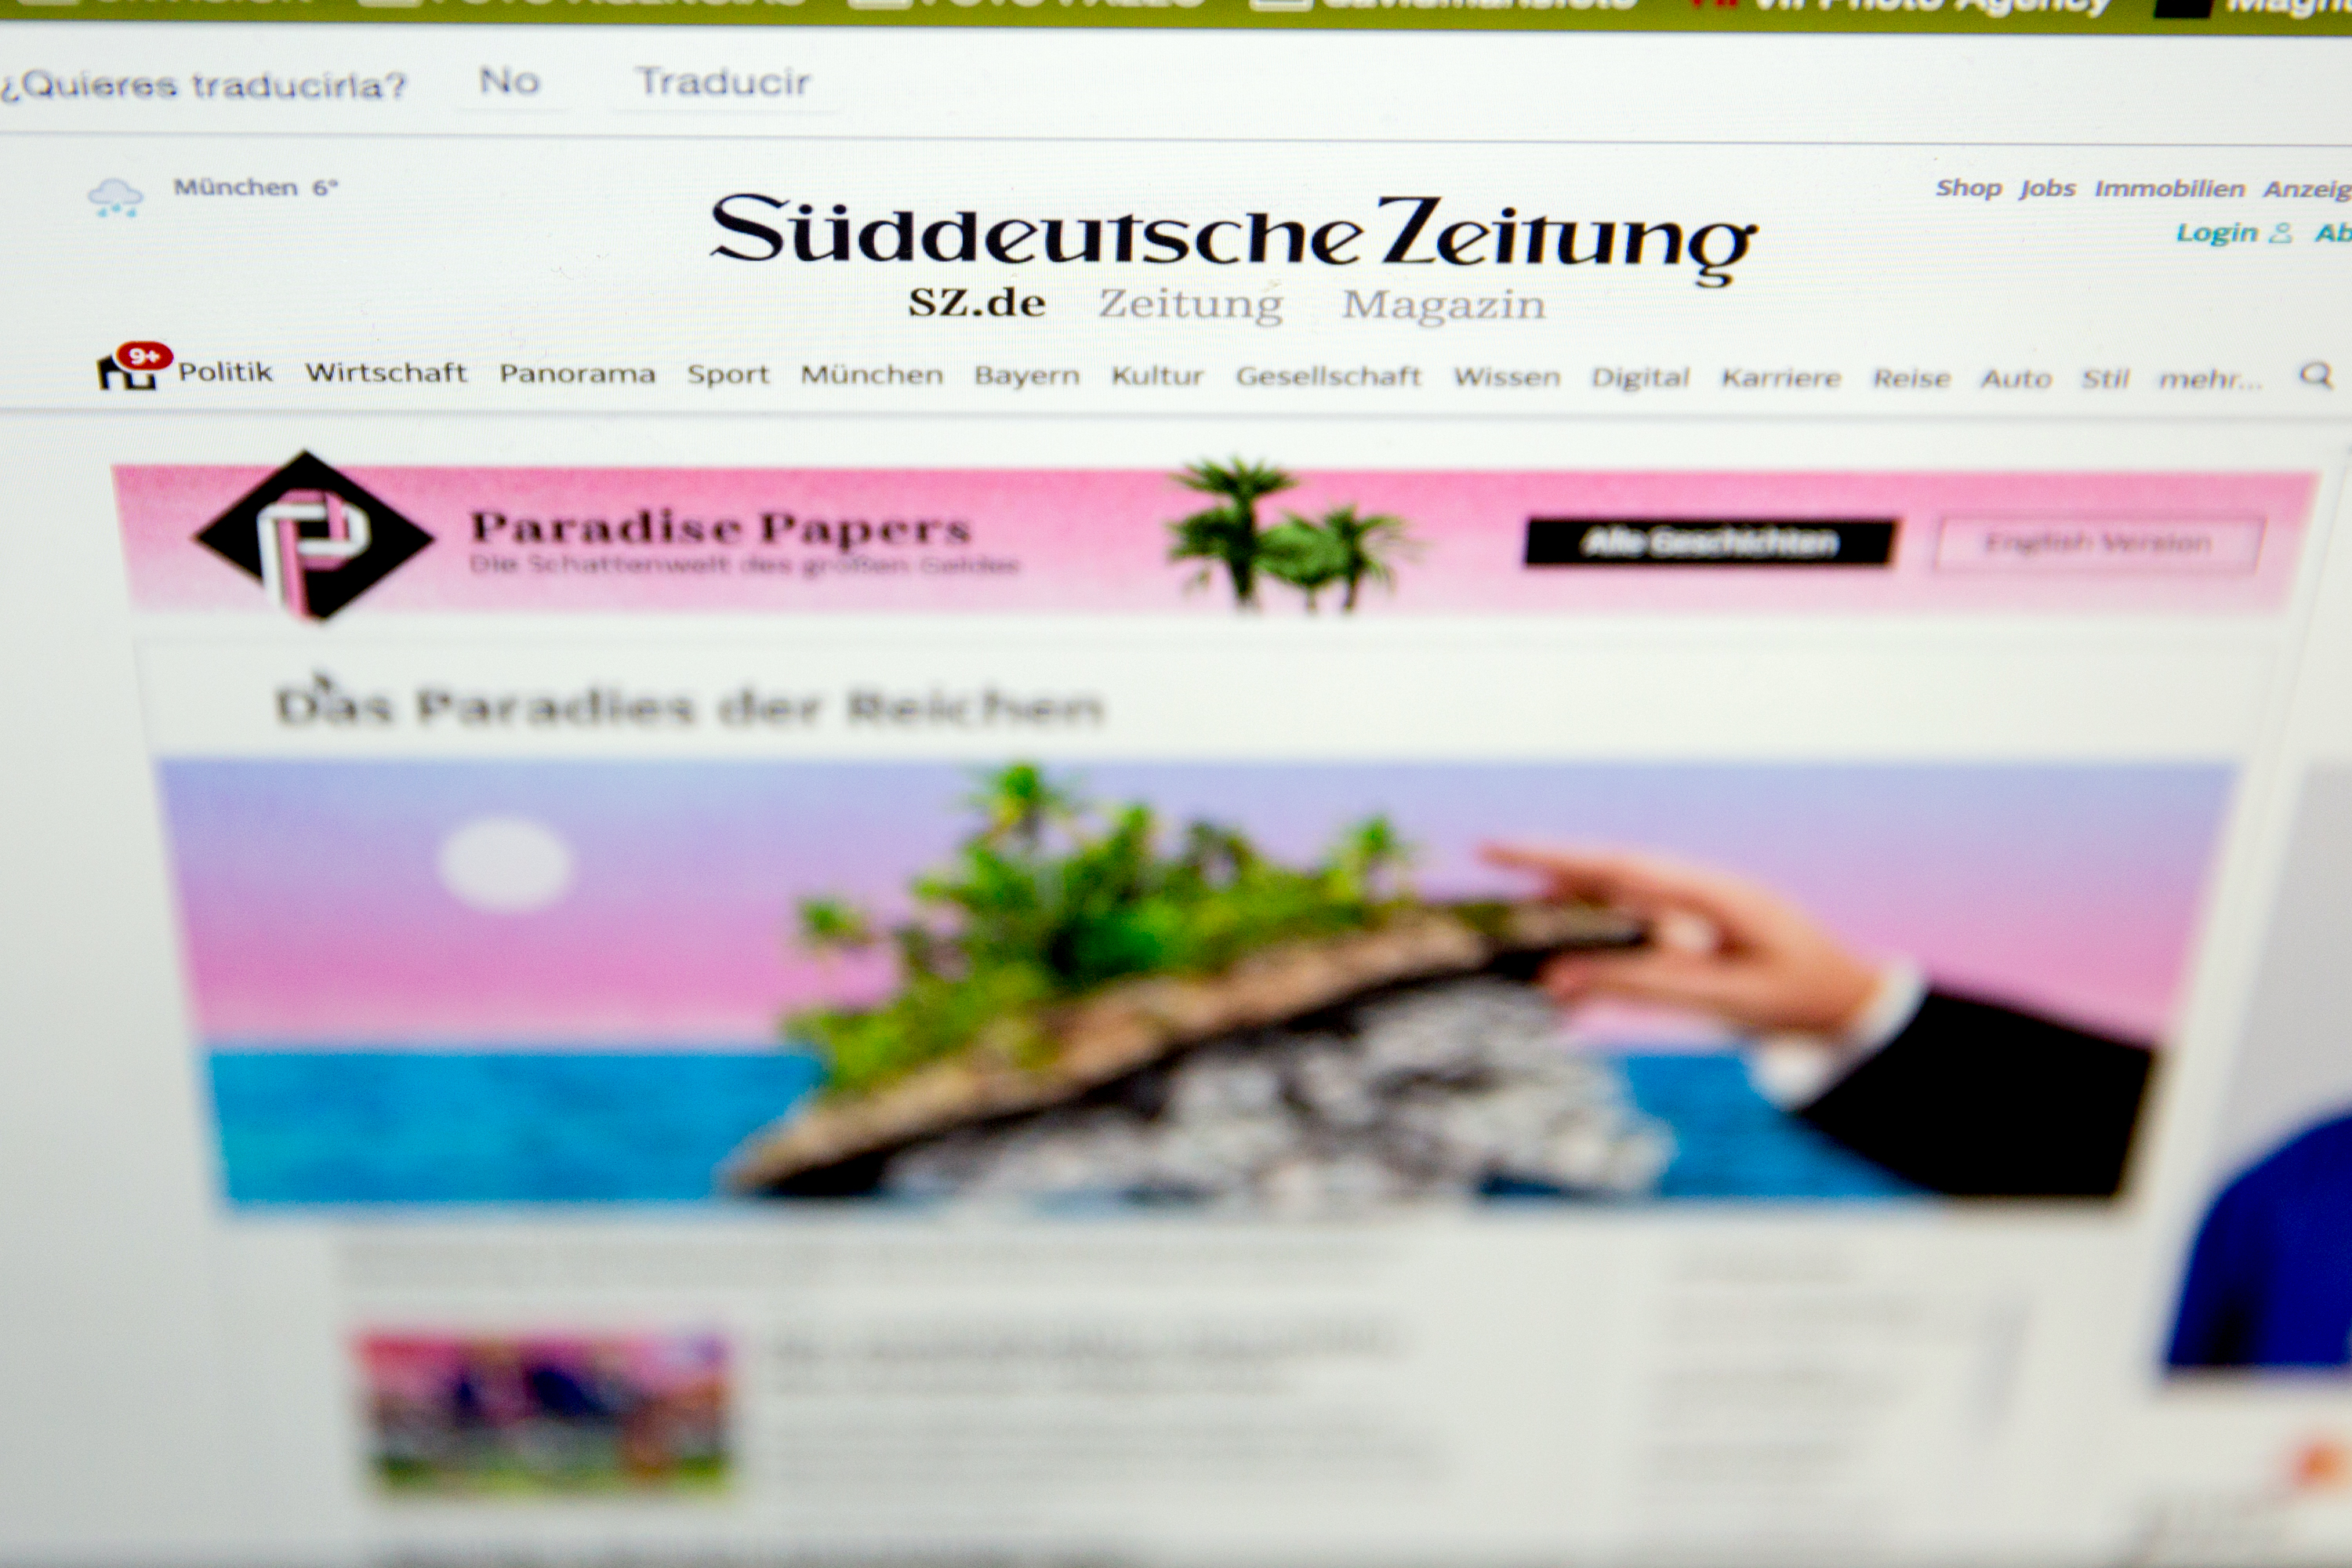 Süddeutsche Zeitung Shop In Photos 20 Facts About The Paradise Papers Leak